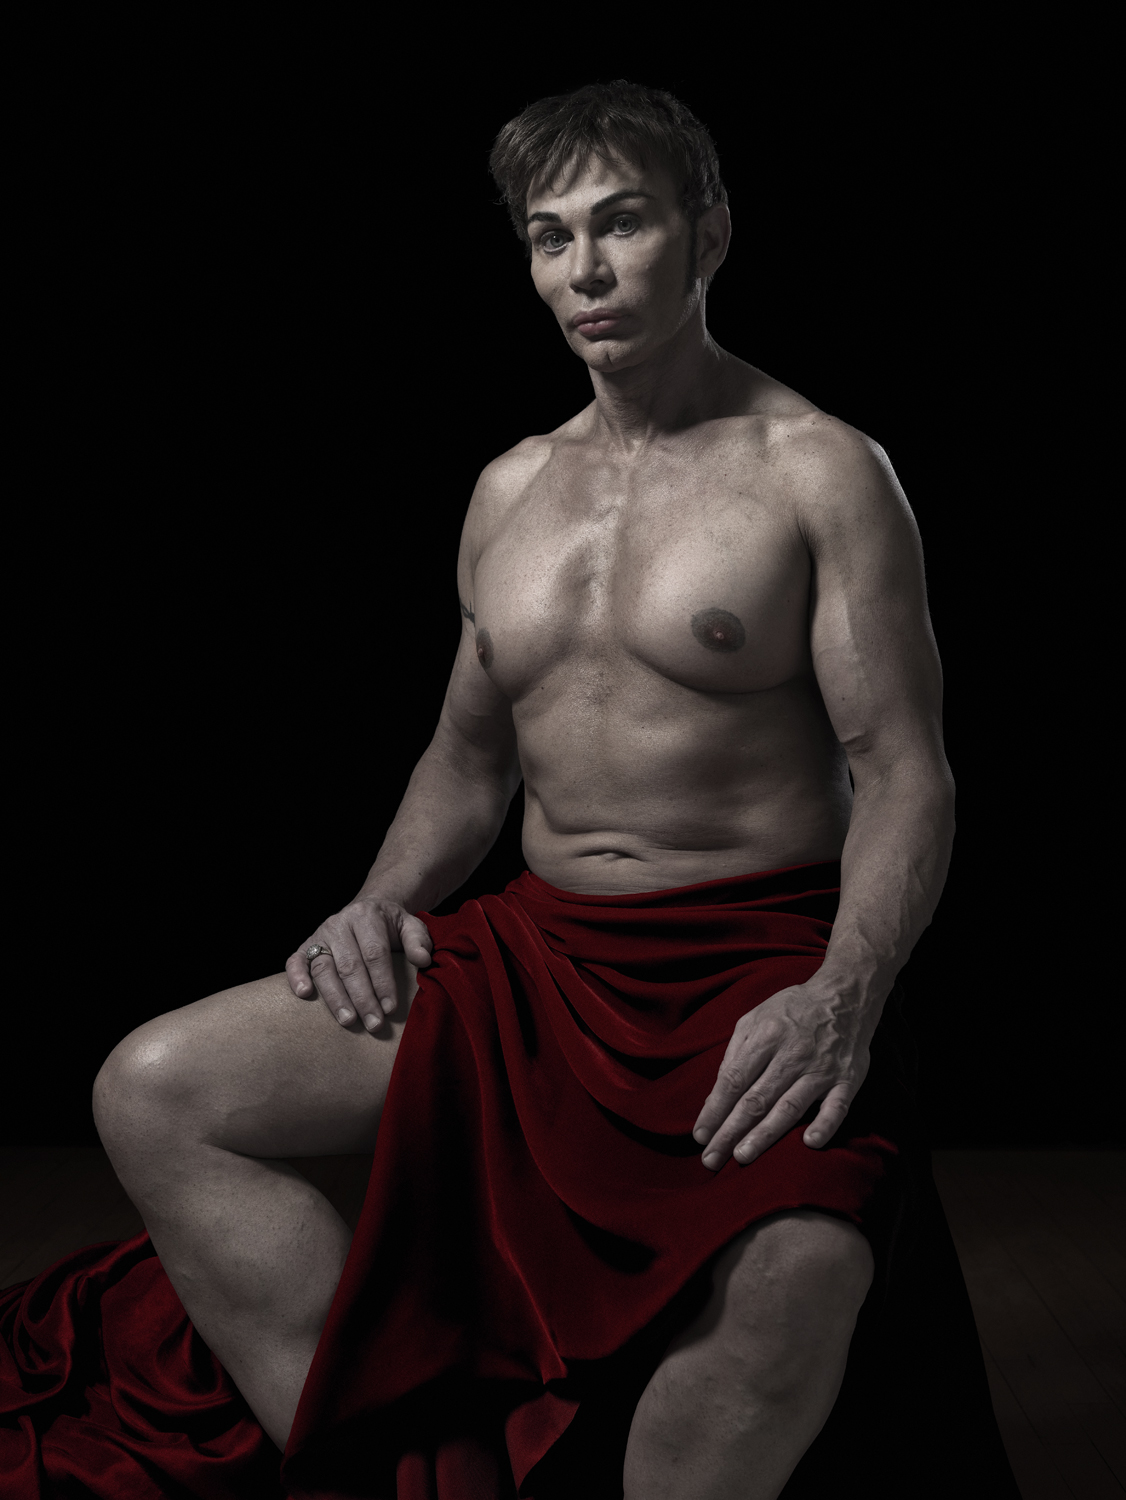 From A New Kind of Beauty: Steve © Phillip Toledano